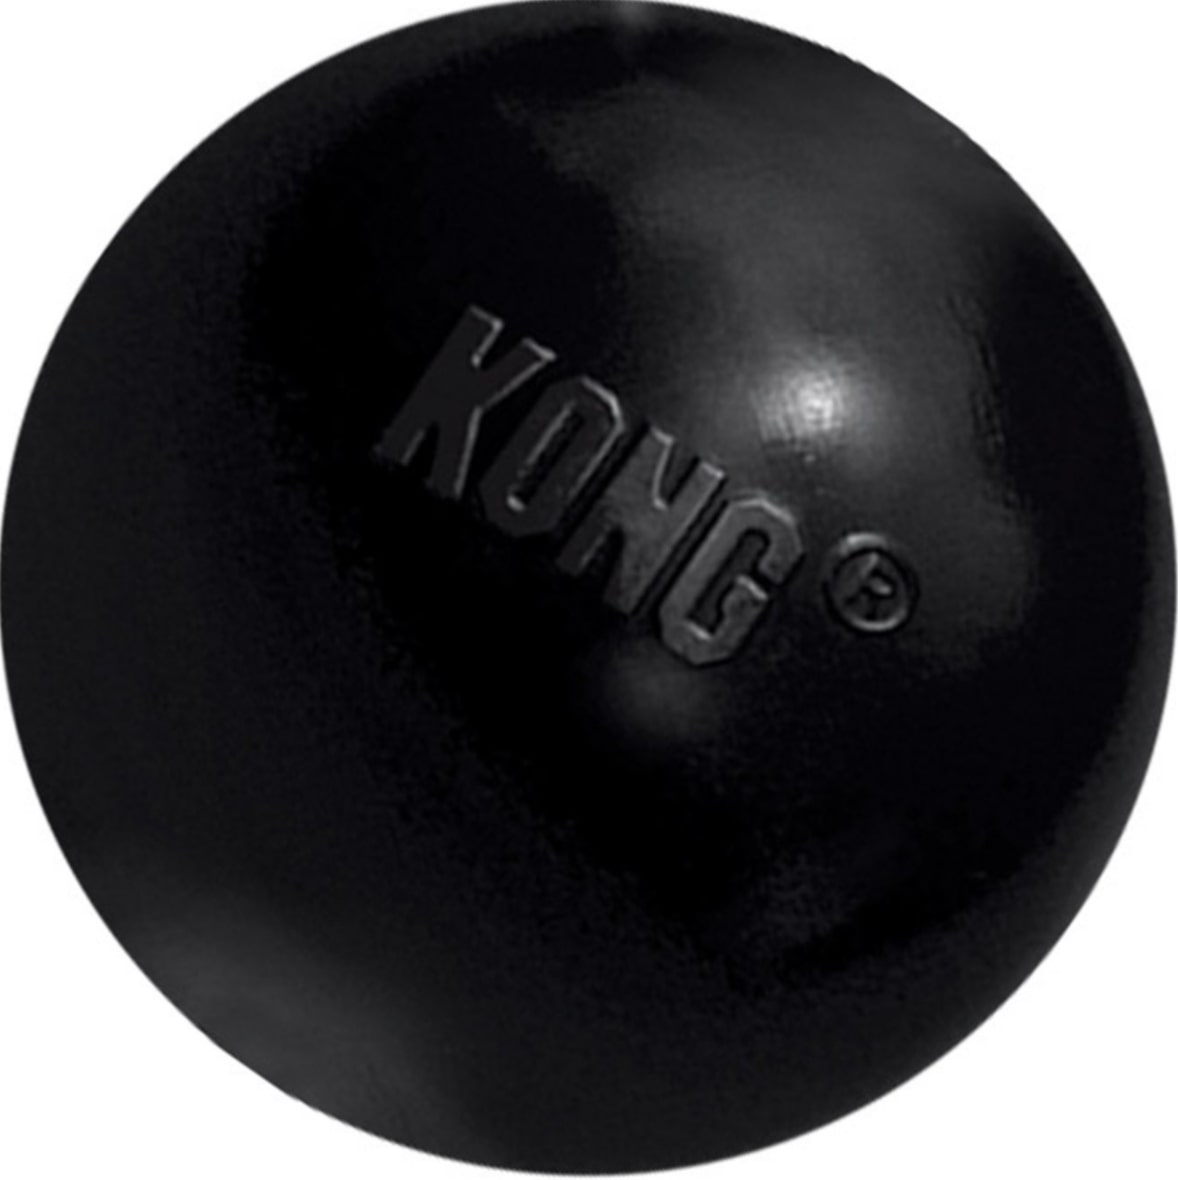 Rubber Ball Extreme